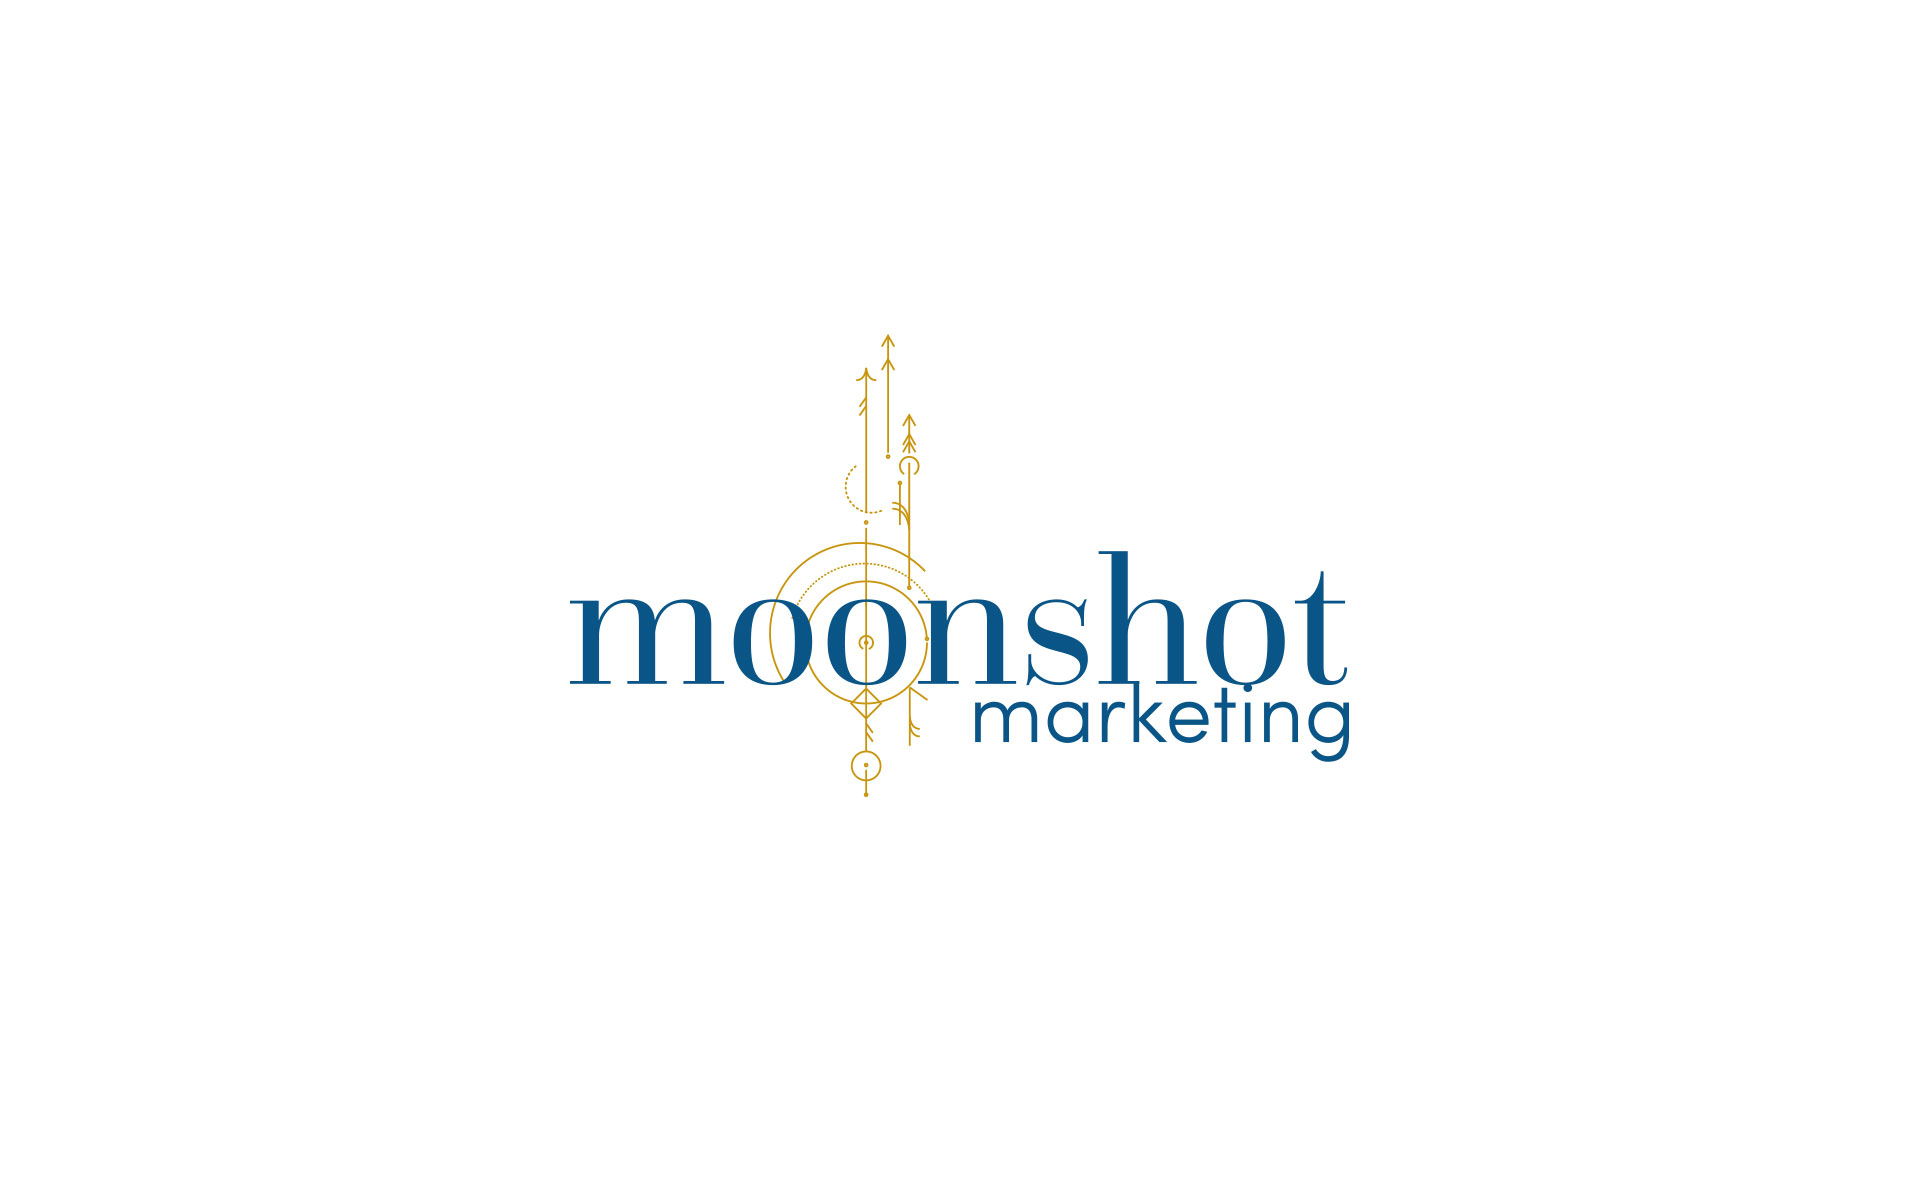 Moonshot Marketing logo, branding & online designed by Amy at Yellow Sunday